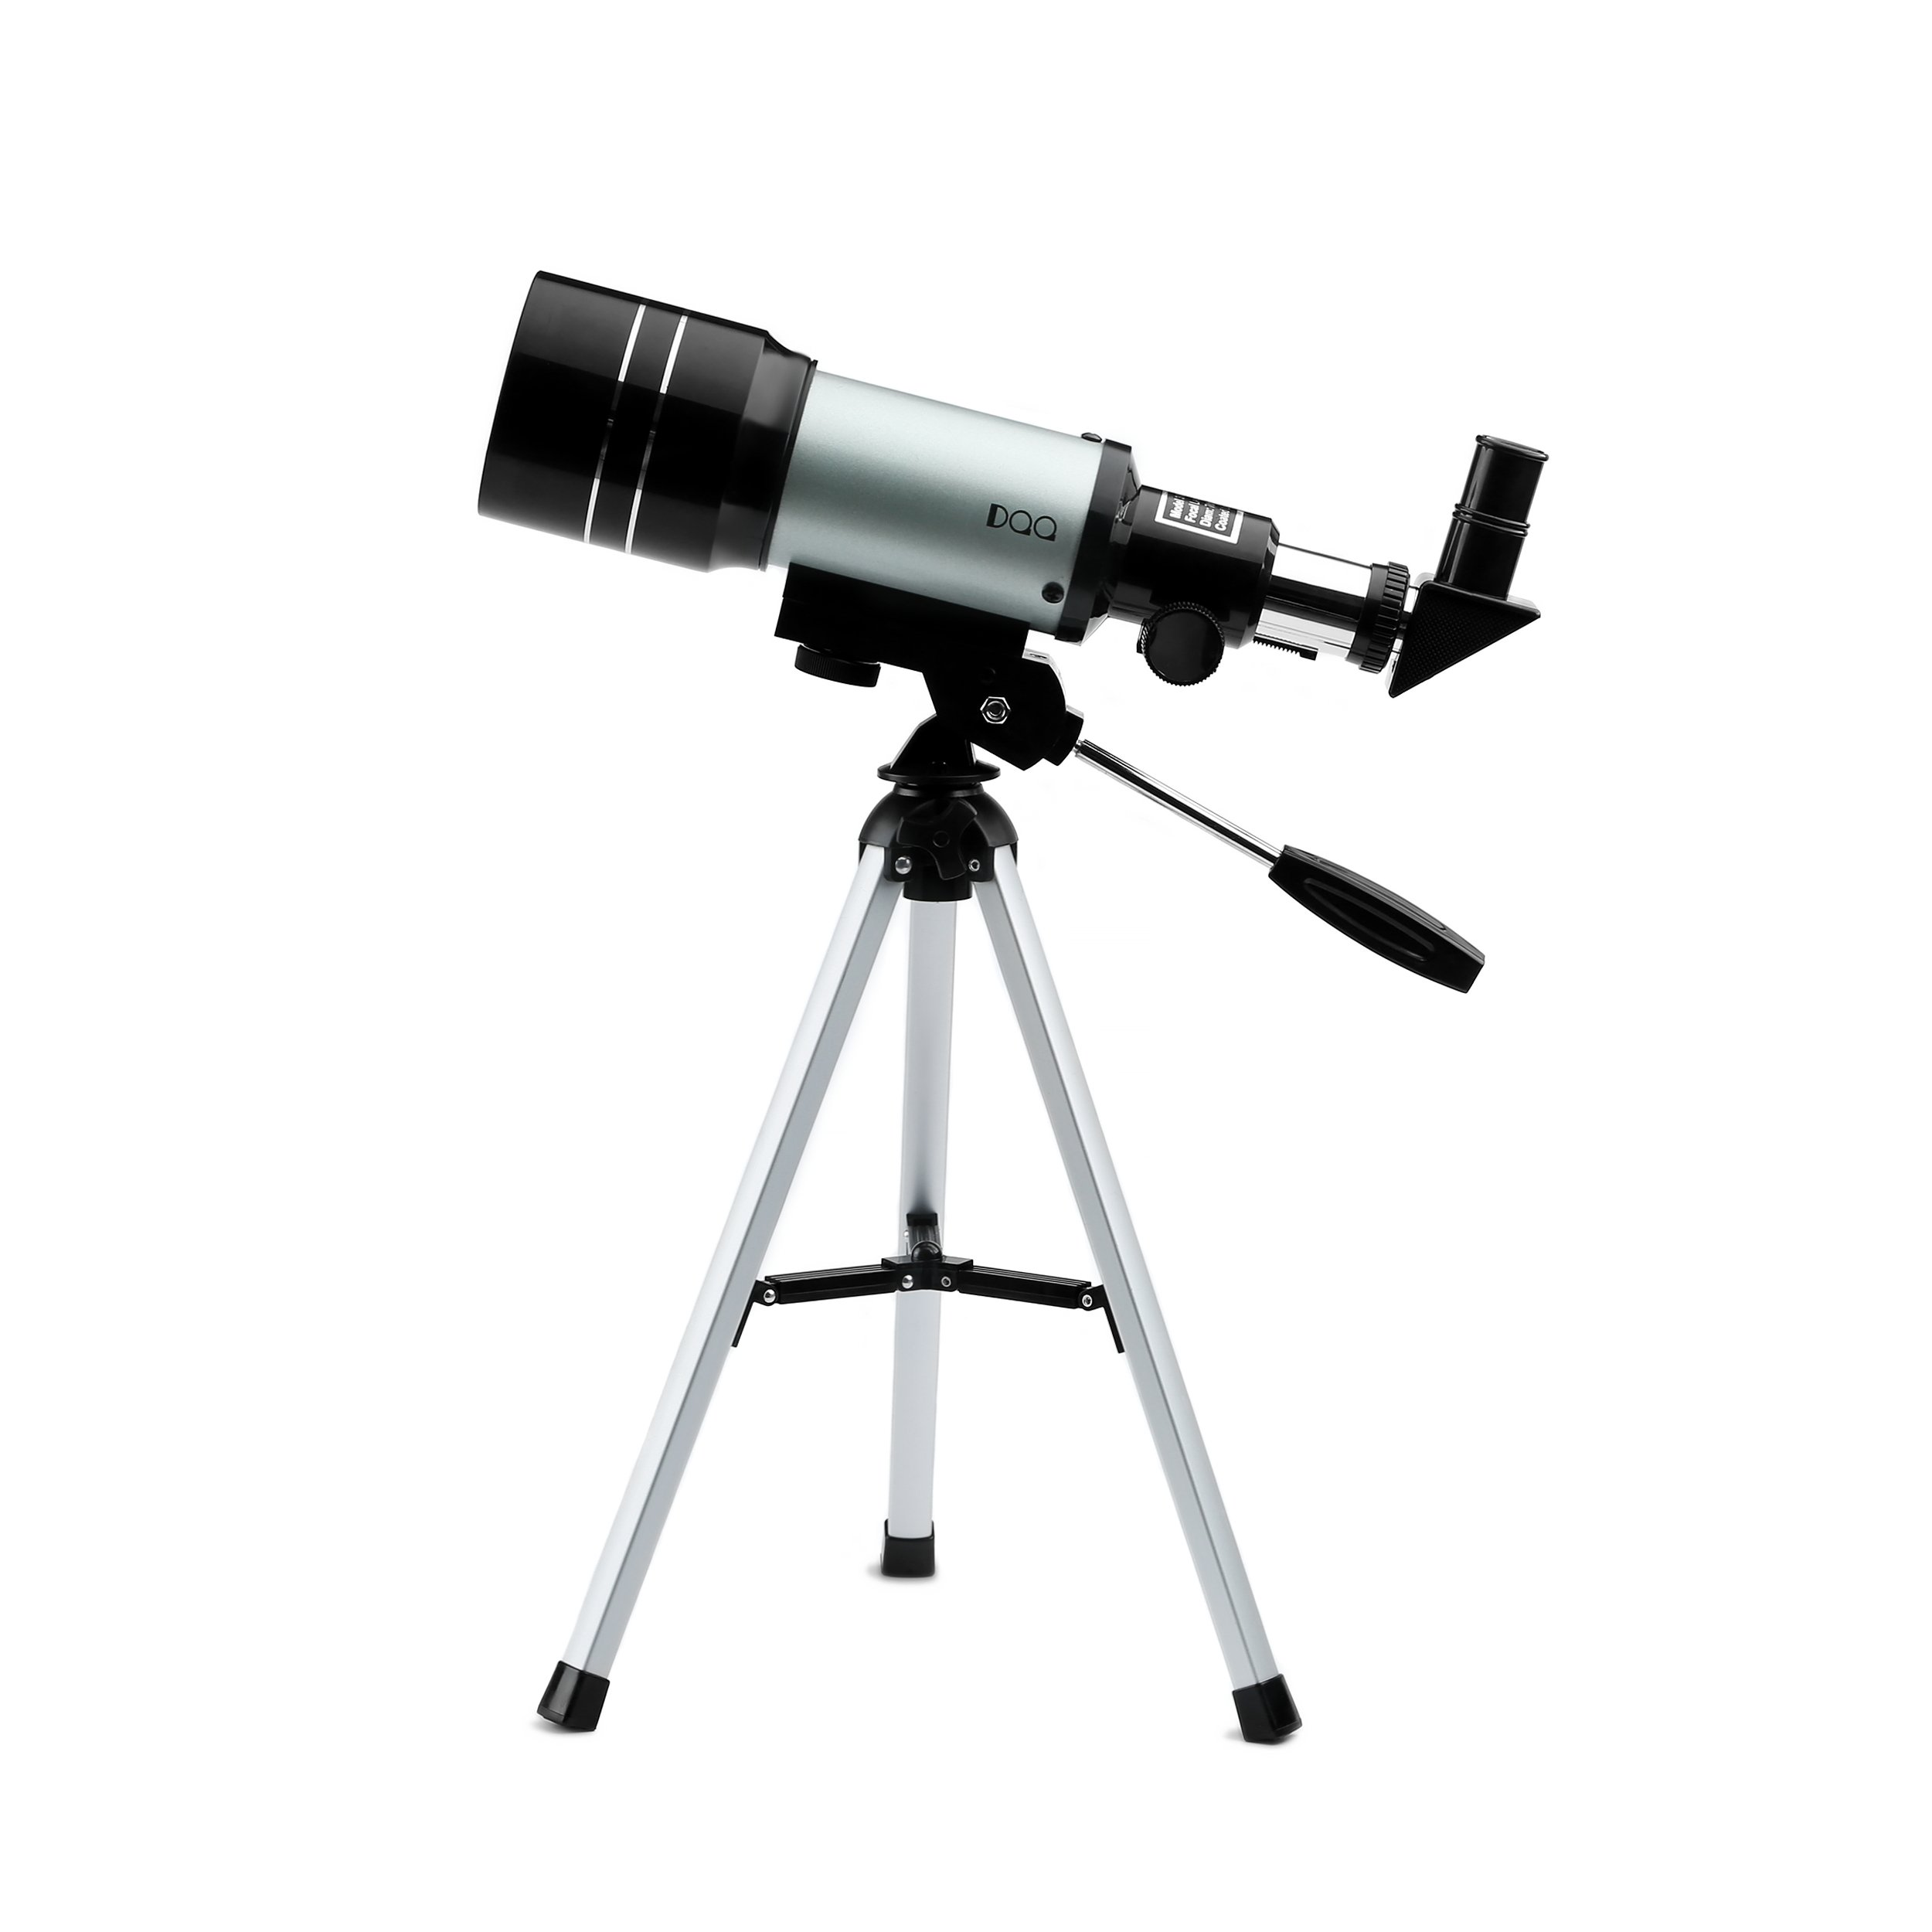 DQQ Telescope for Kids Sky Monocular Telescopes for Astronomy Beginners with Tripod Black 70mm,3X Barlow Lens by DQQ